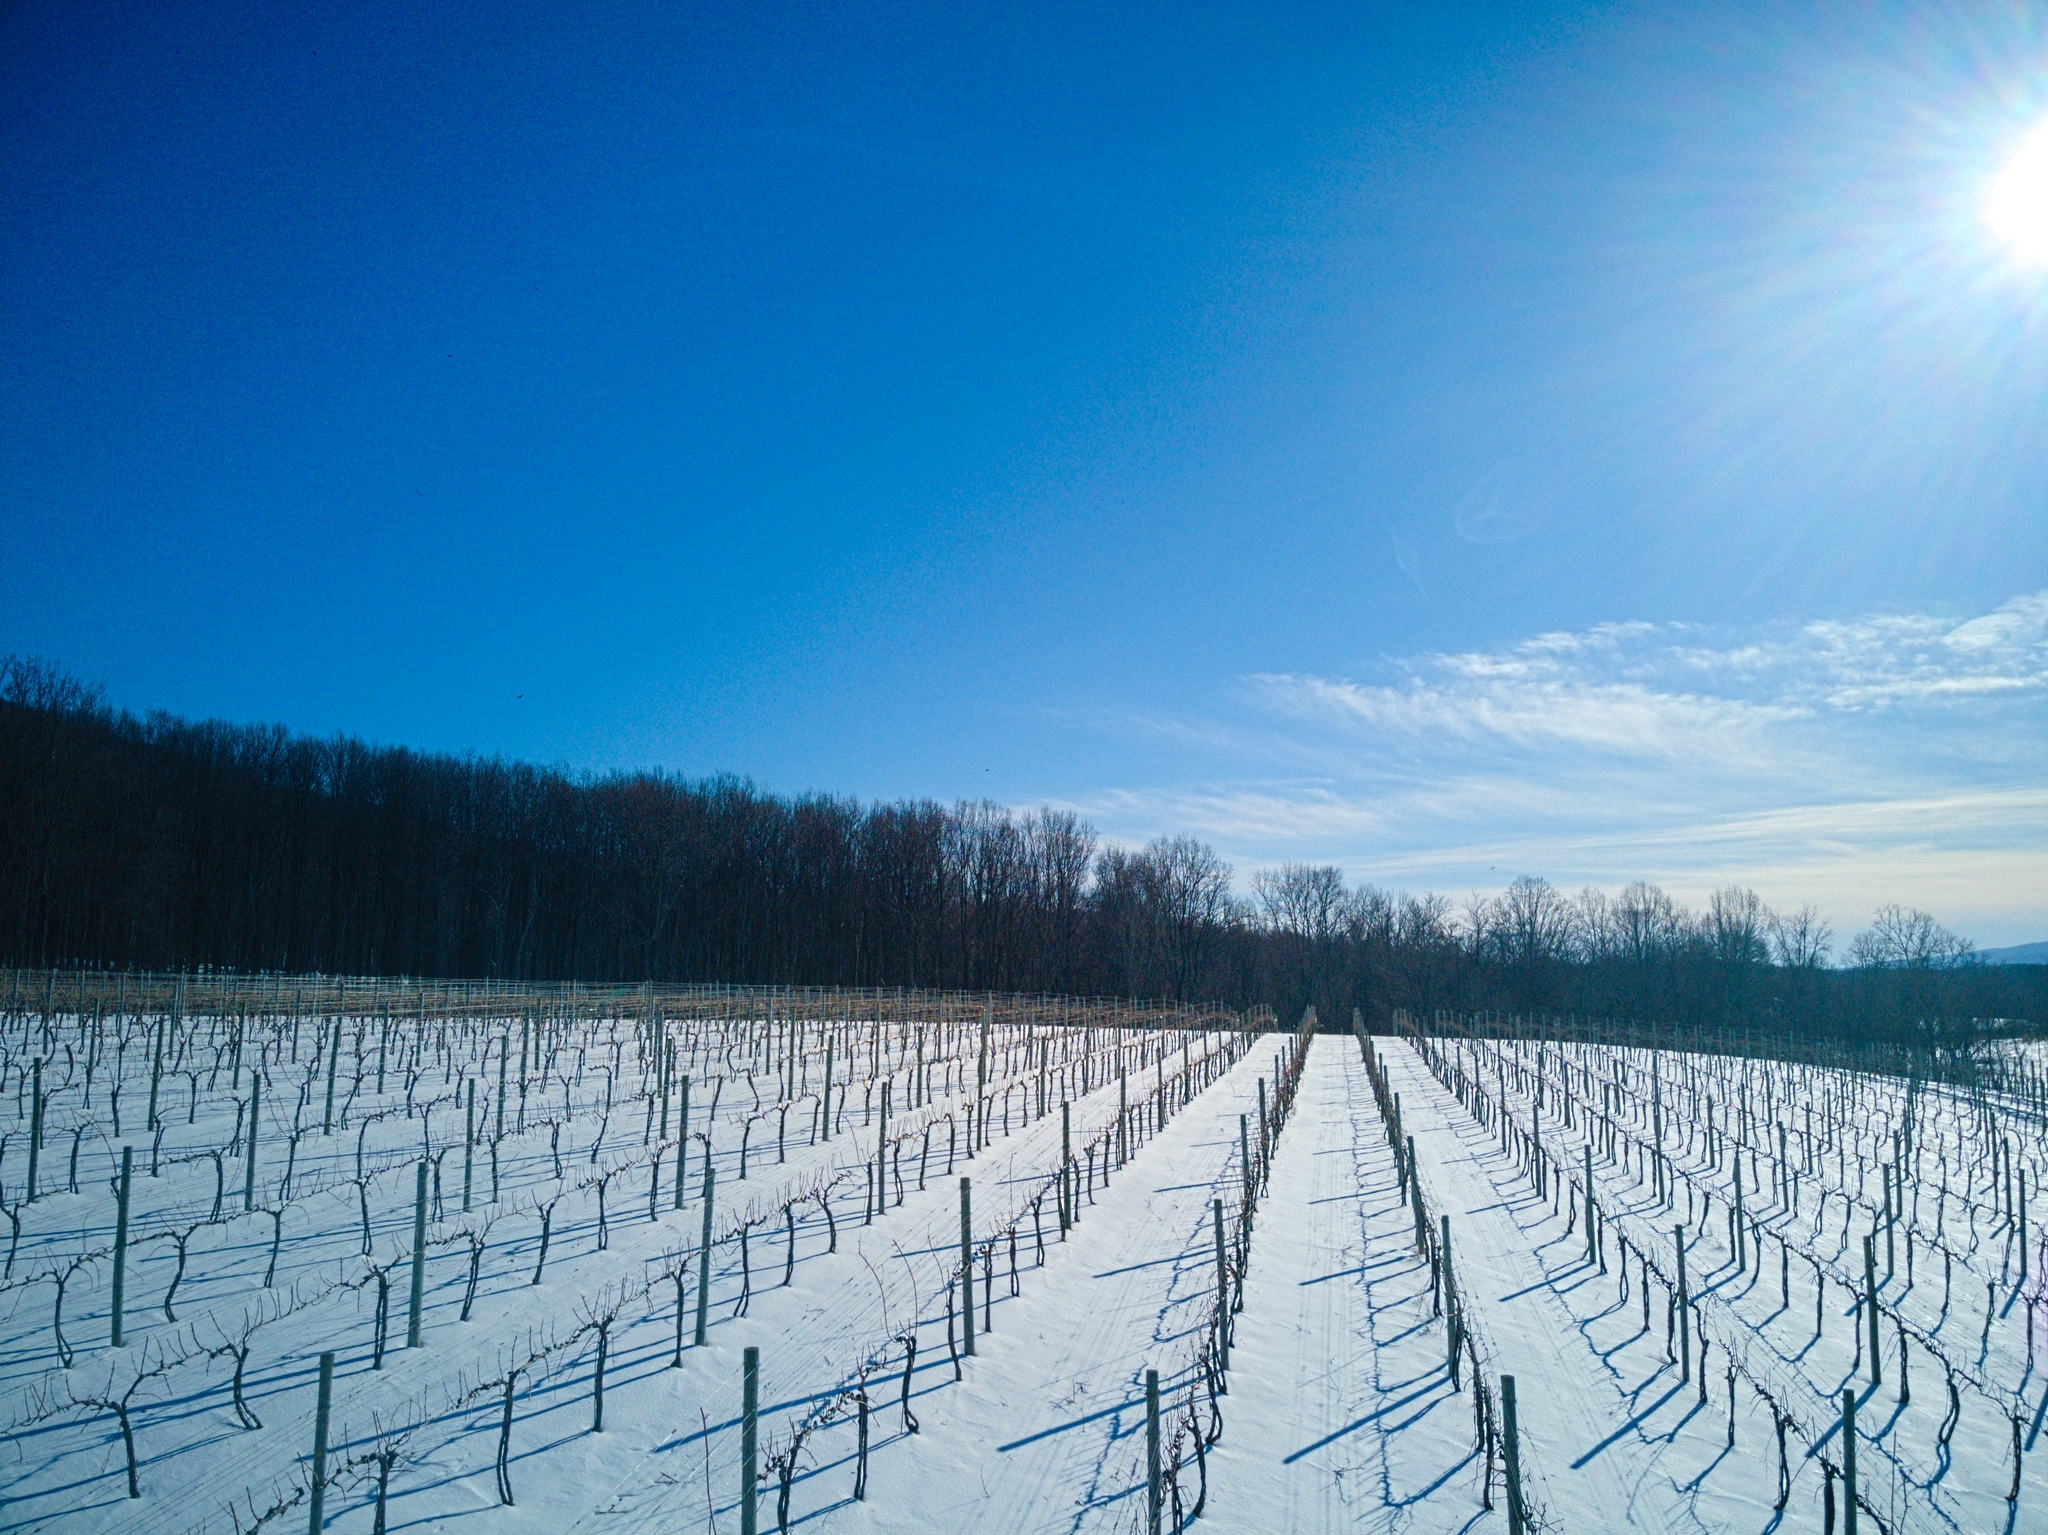 Sunny vineyard with rows of grape vines